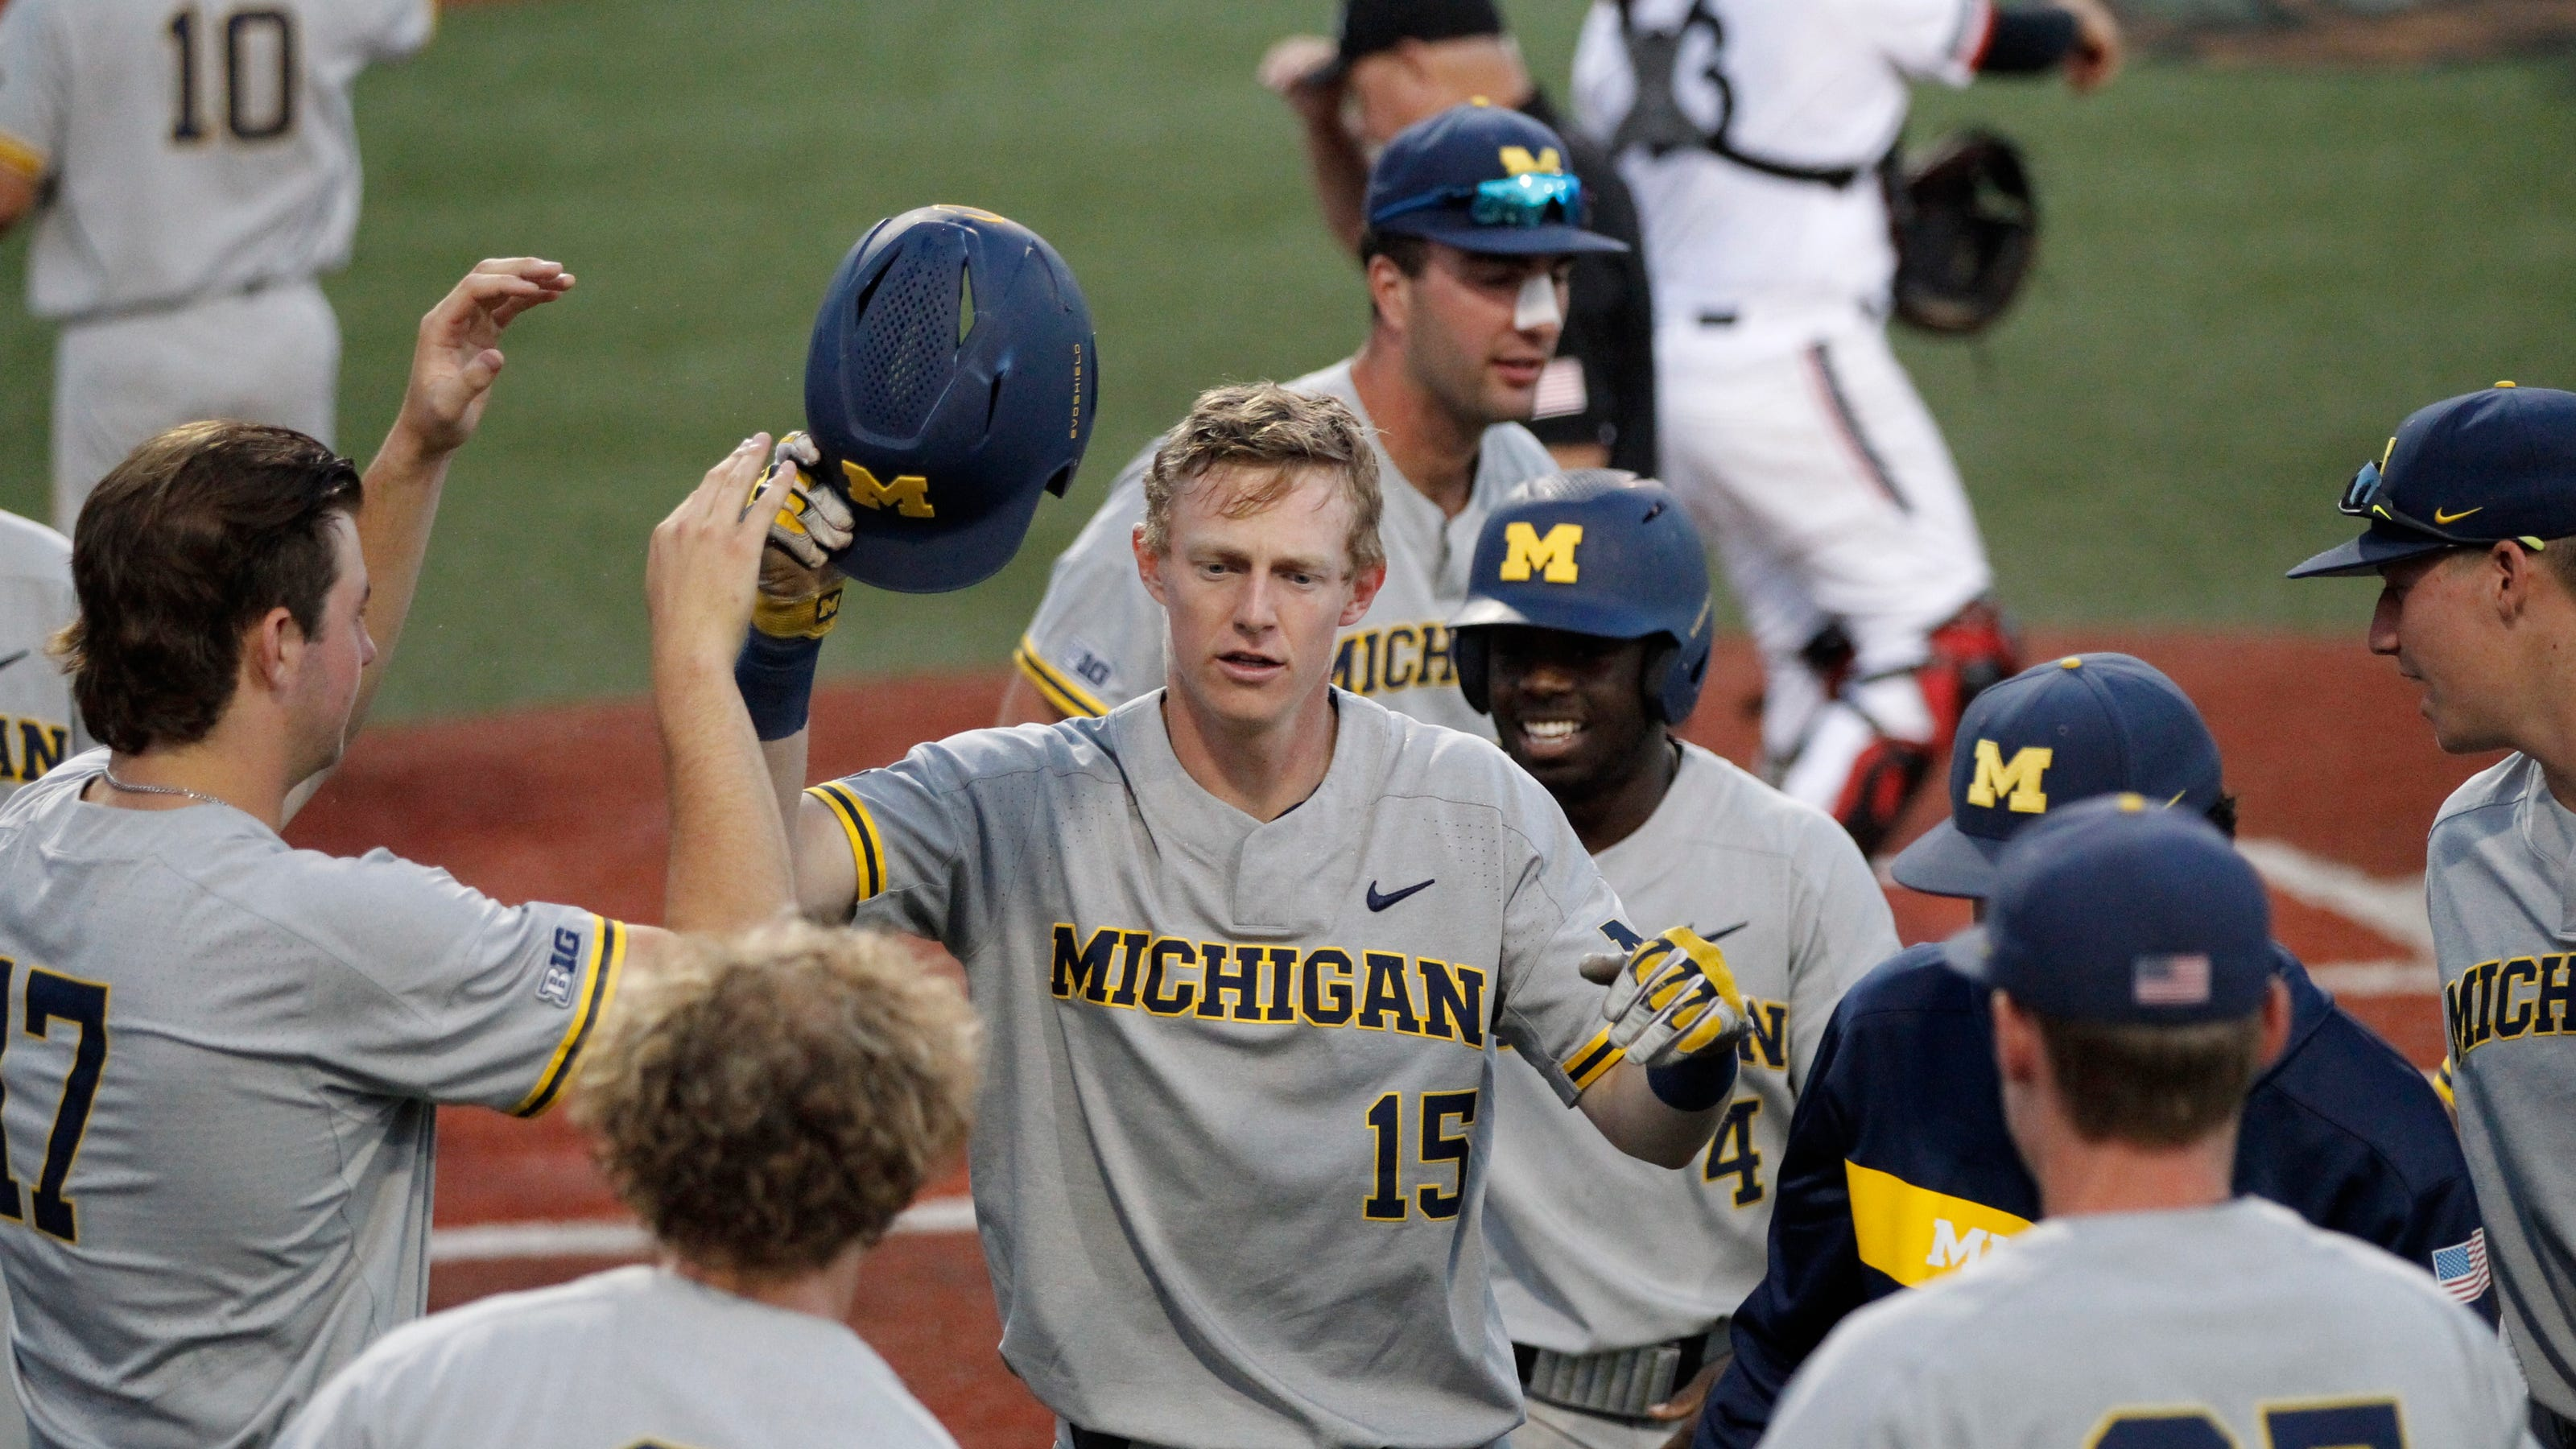 Saturday S College Baseball Um A Win From Advancing Cmu Faces Elimination Game